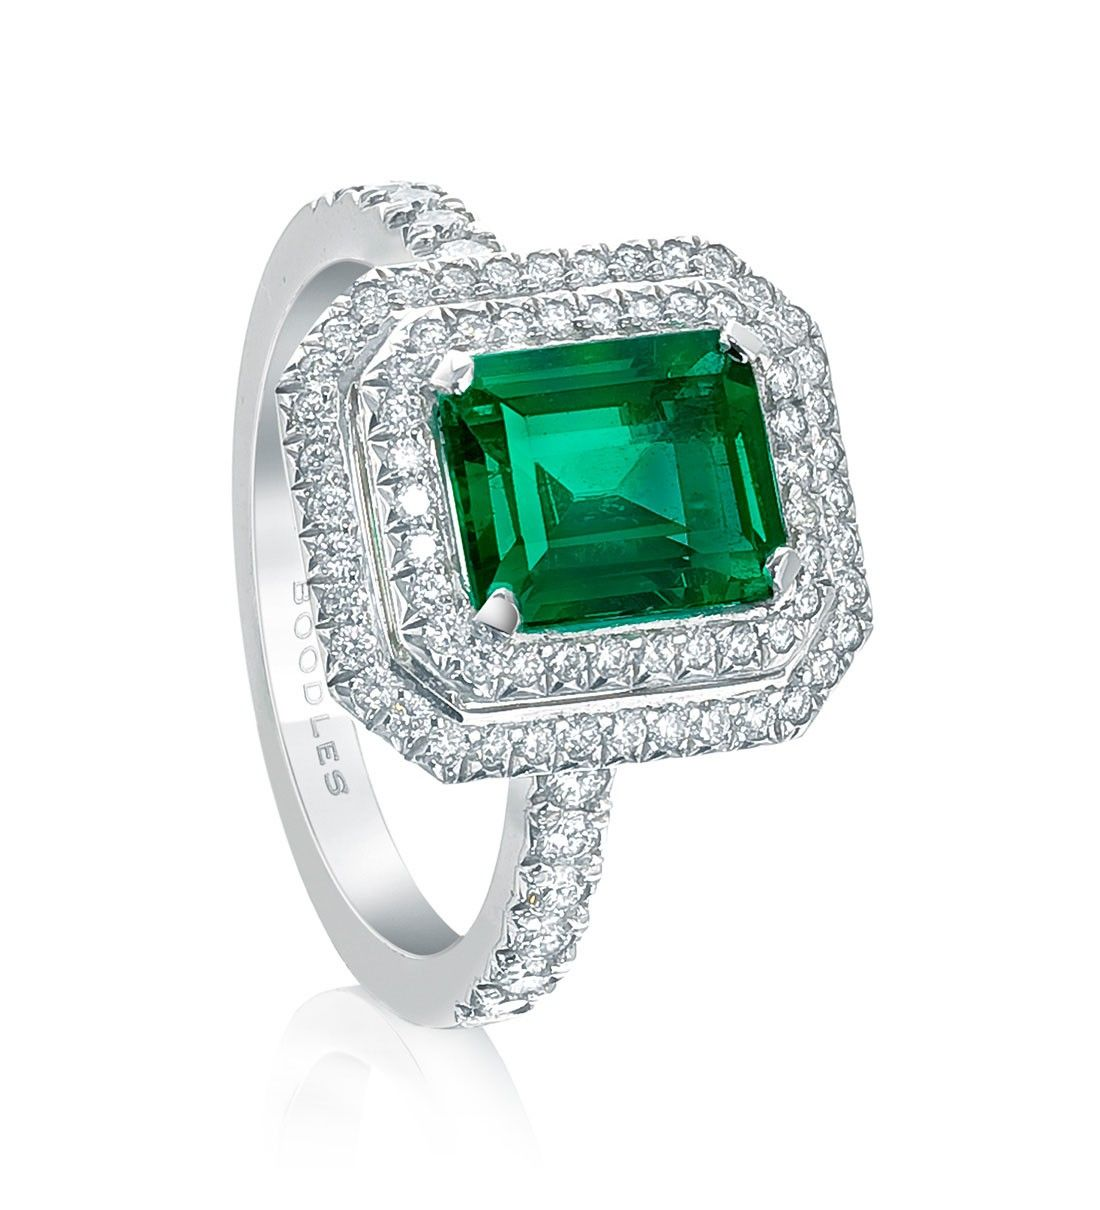 Boodles Double Vintage Emerald Ring from the Vintage collection